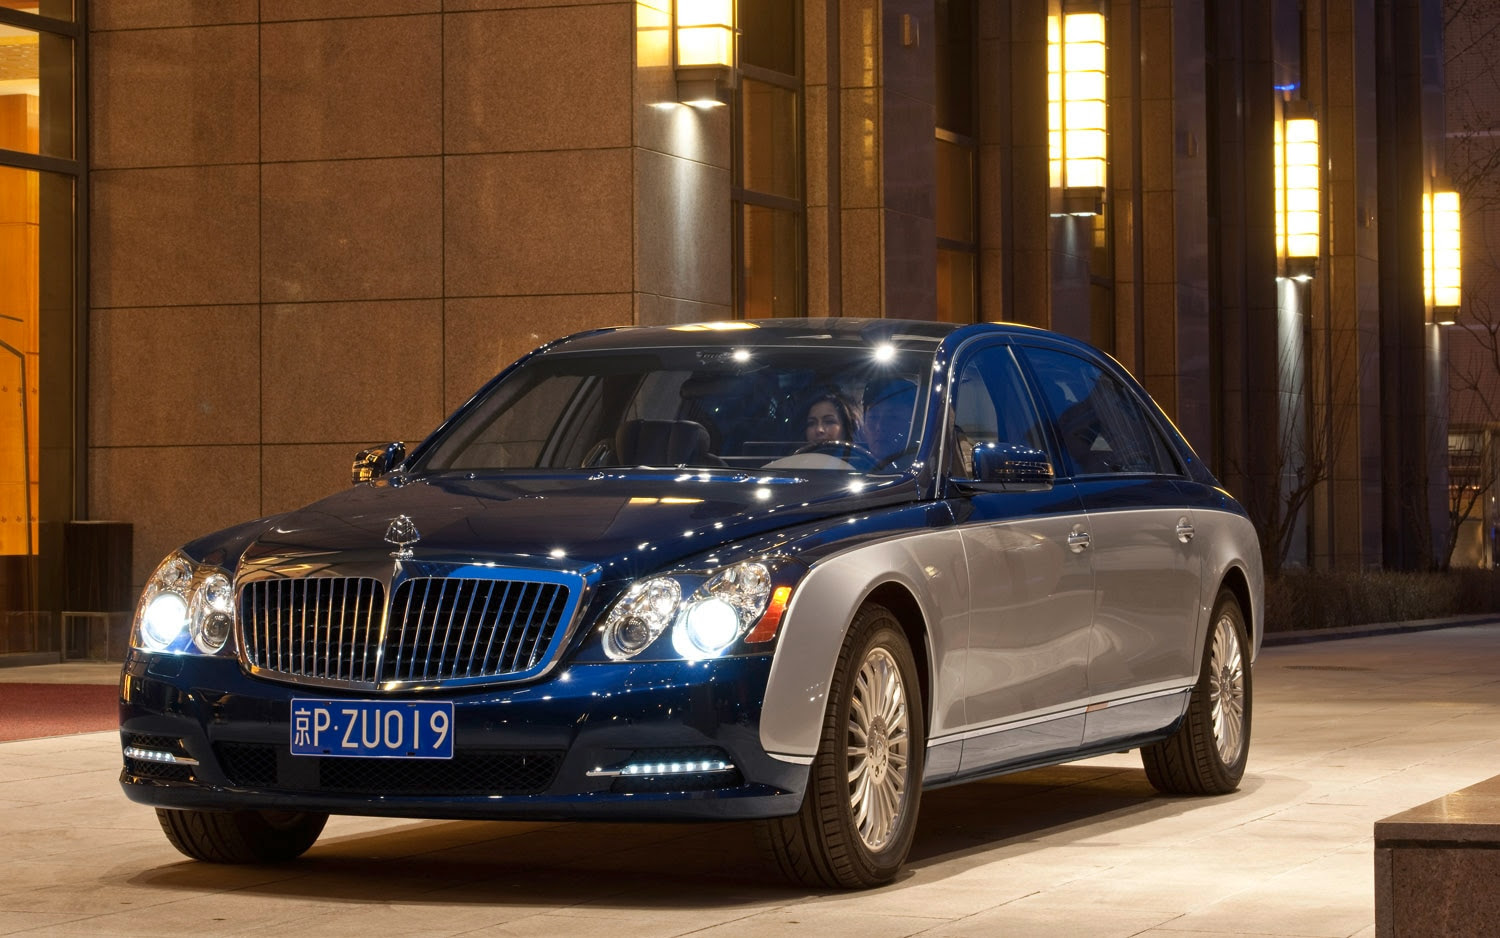 Daimler Finally Kills Maybach, Will Replace With Stretched MercedesBenz SClass